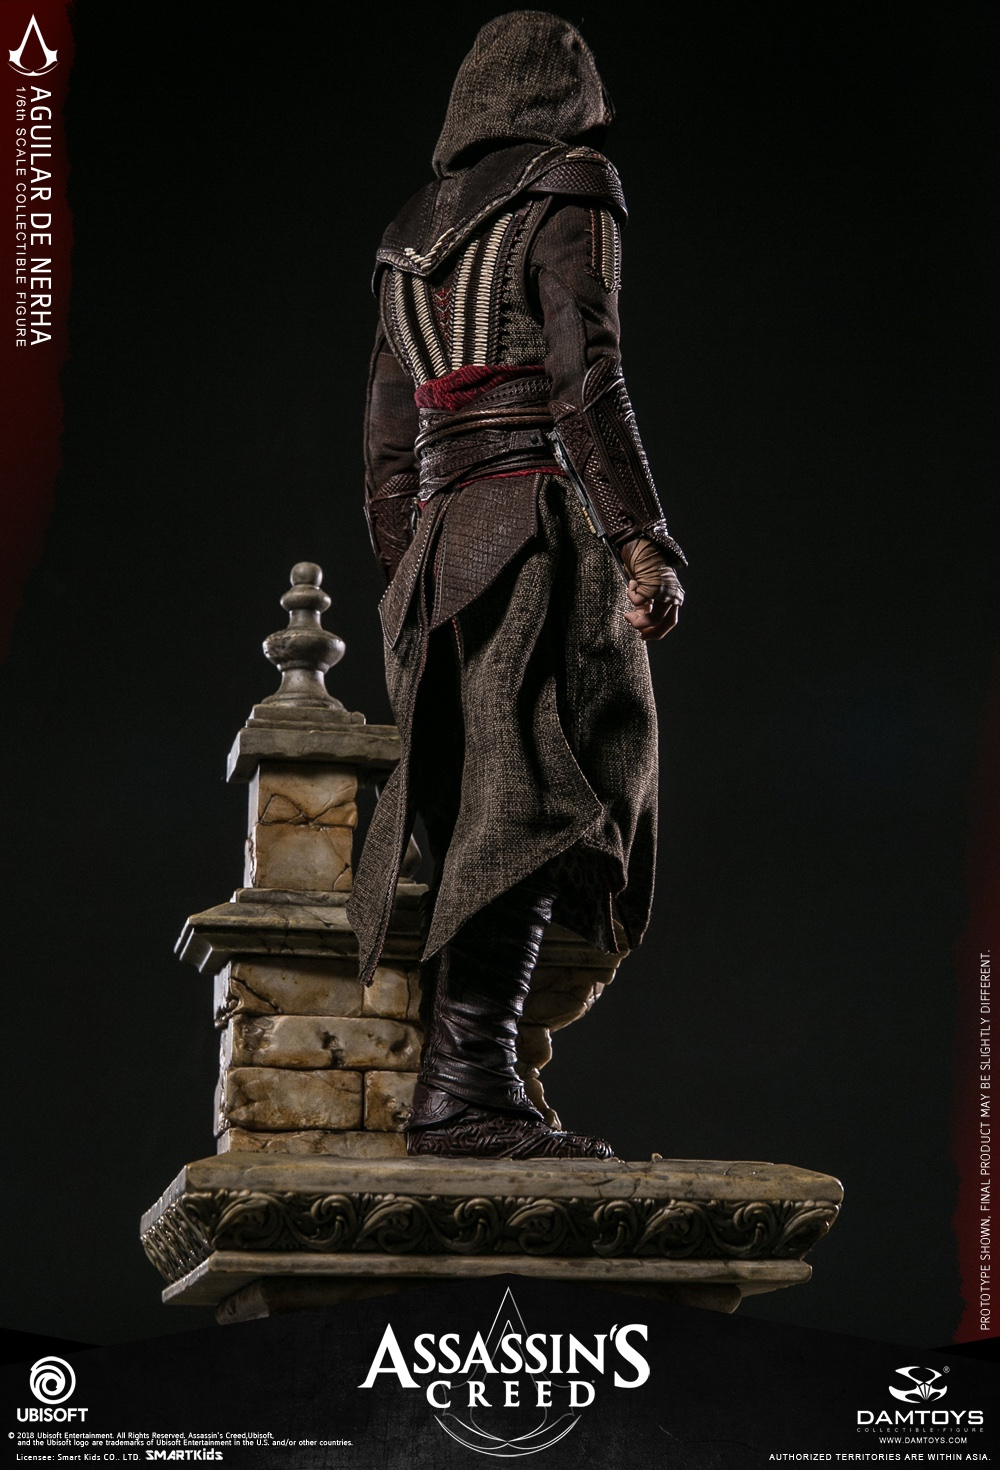 NEW PRODUCT: Damtoys–Assassin's Creed –1/6th scale Aguilar Collectible Figure Specifications 130200i8uwojpjqaye29zj